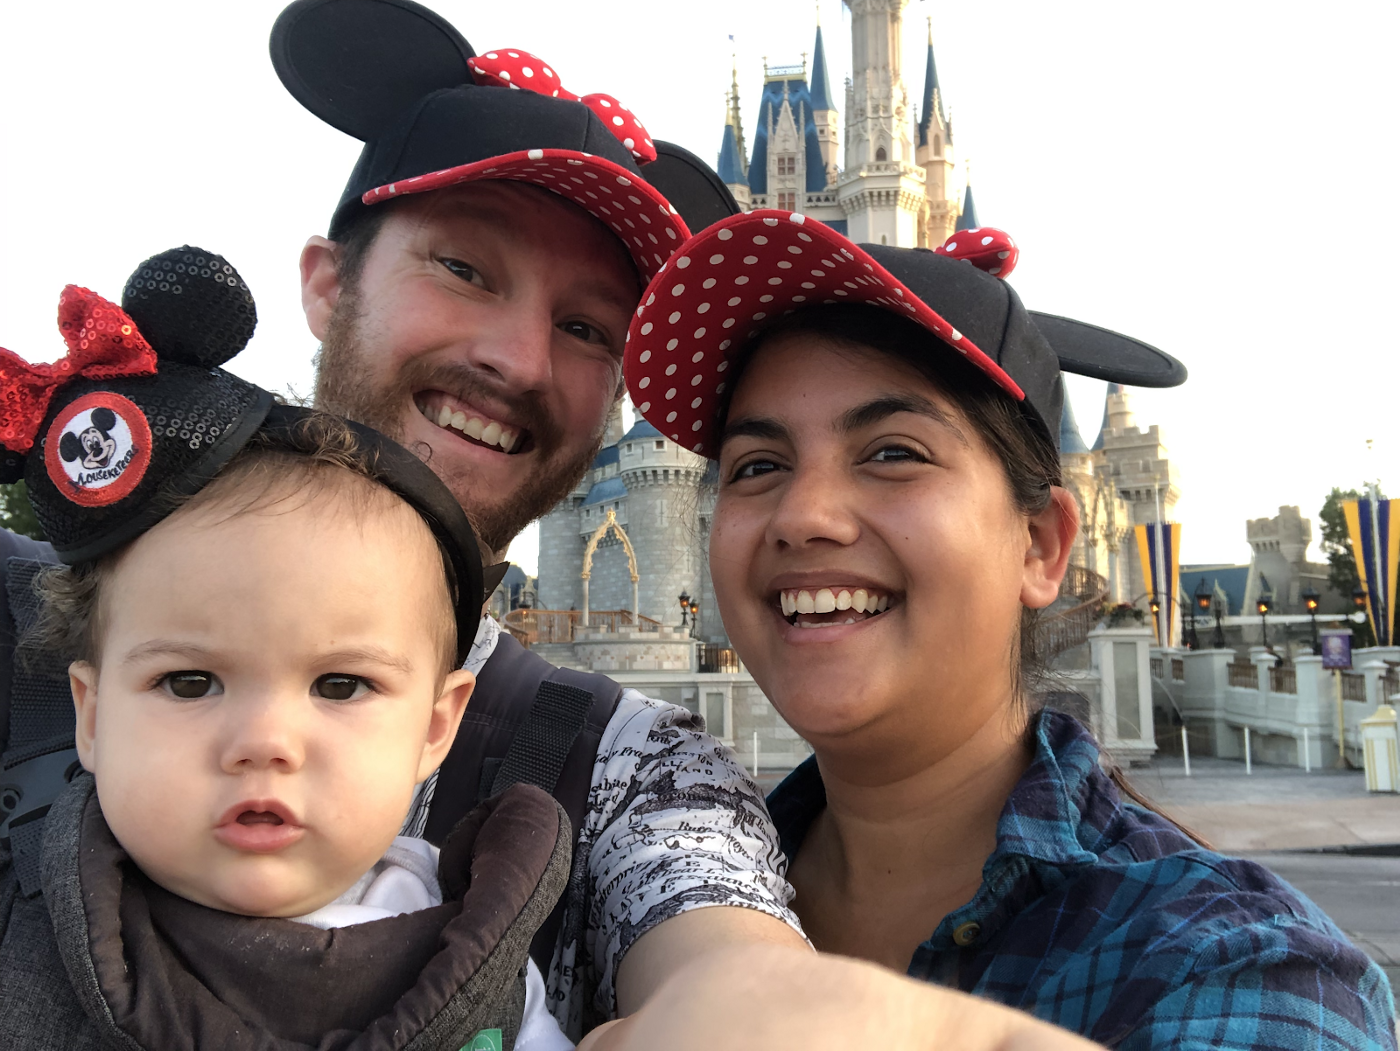 Two adults and a child pose in front of Cinderella's castle in Disney World